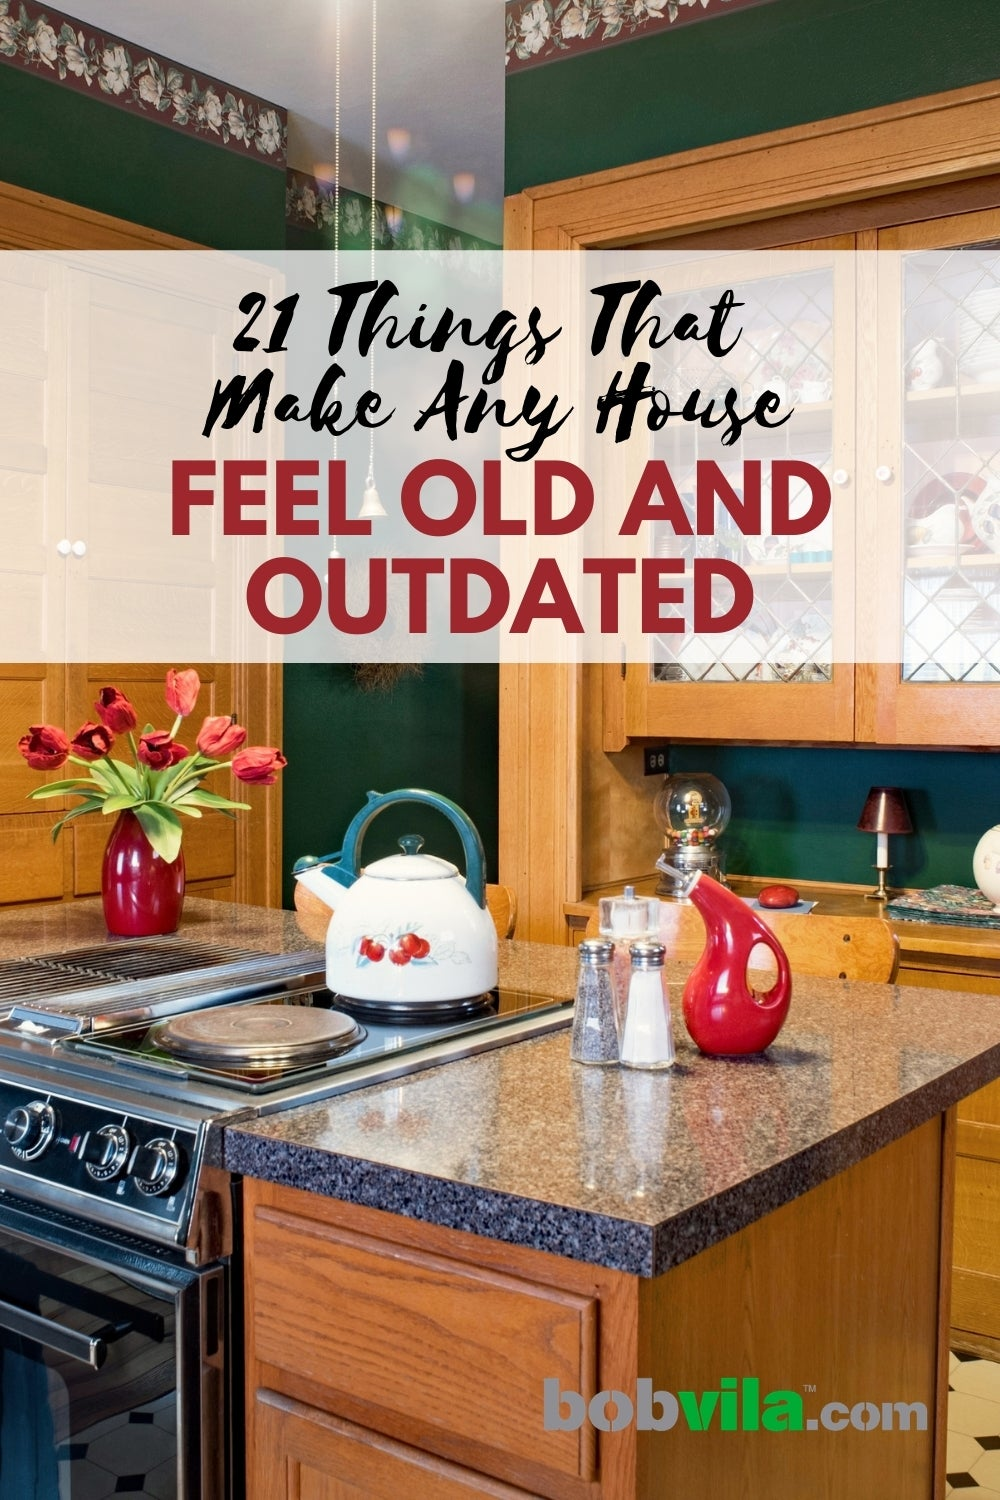 21 Things That Make Any House Feel Old And Outdated Bob Vila